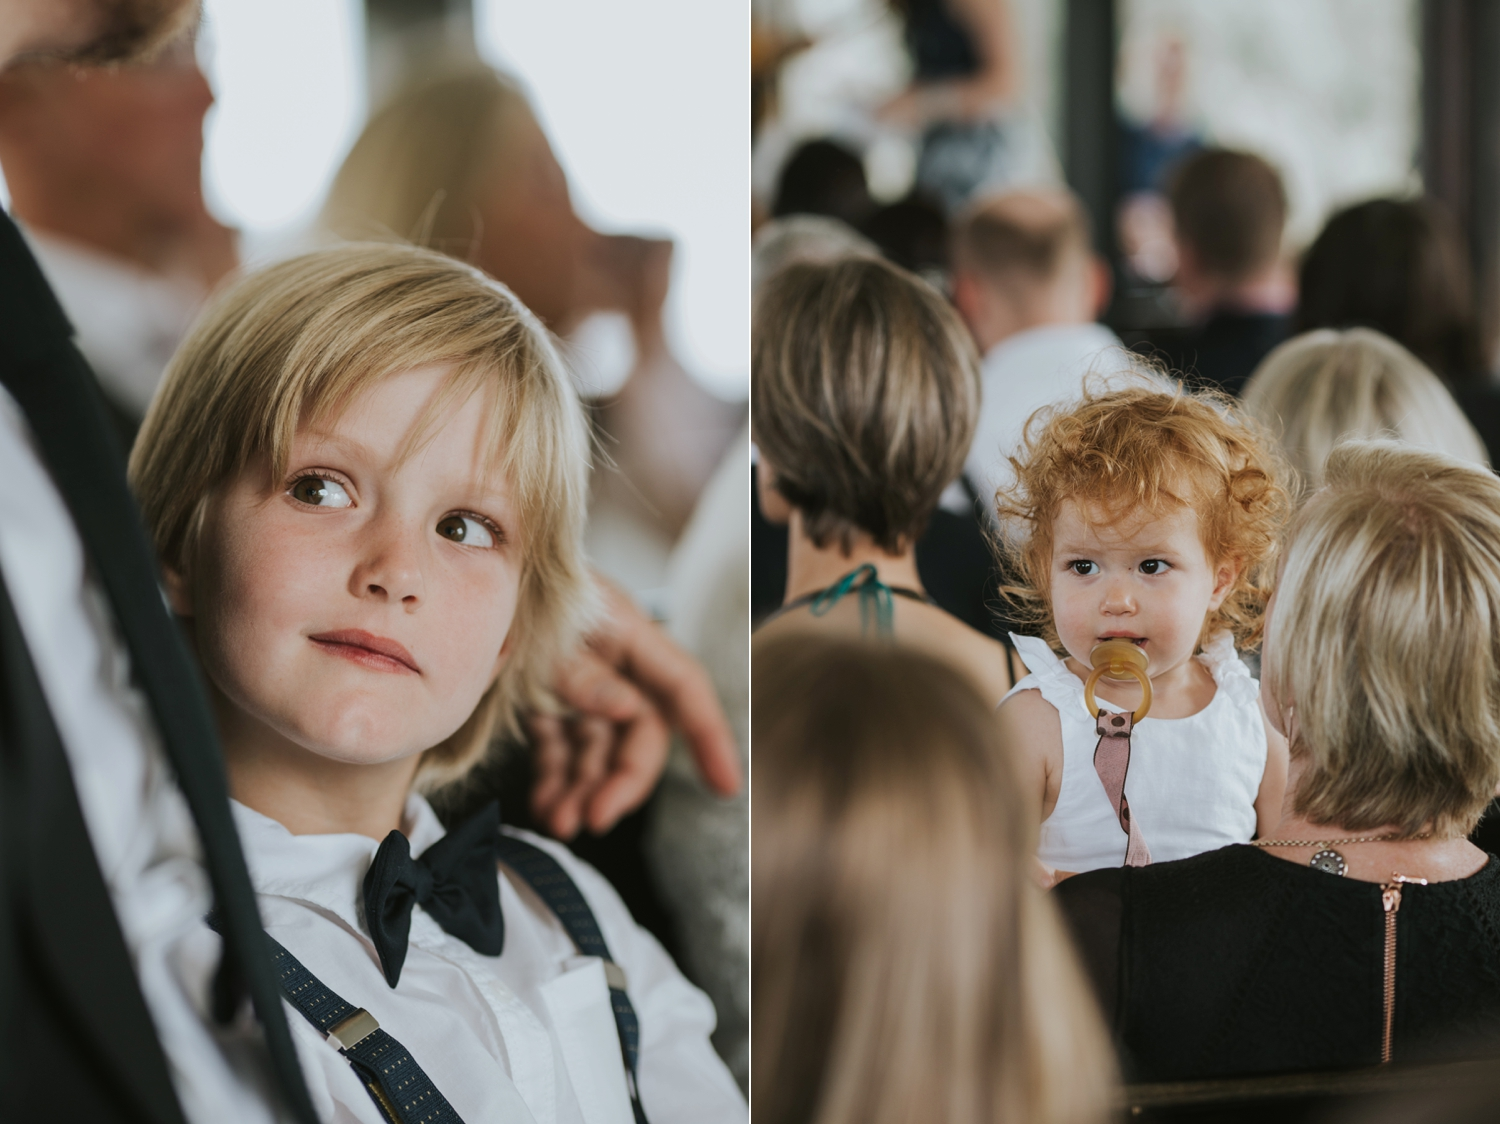 Candid and natural photos of children at Vancouver wedding ceremony